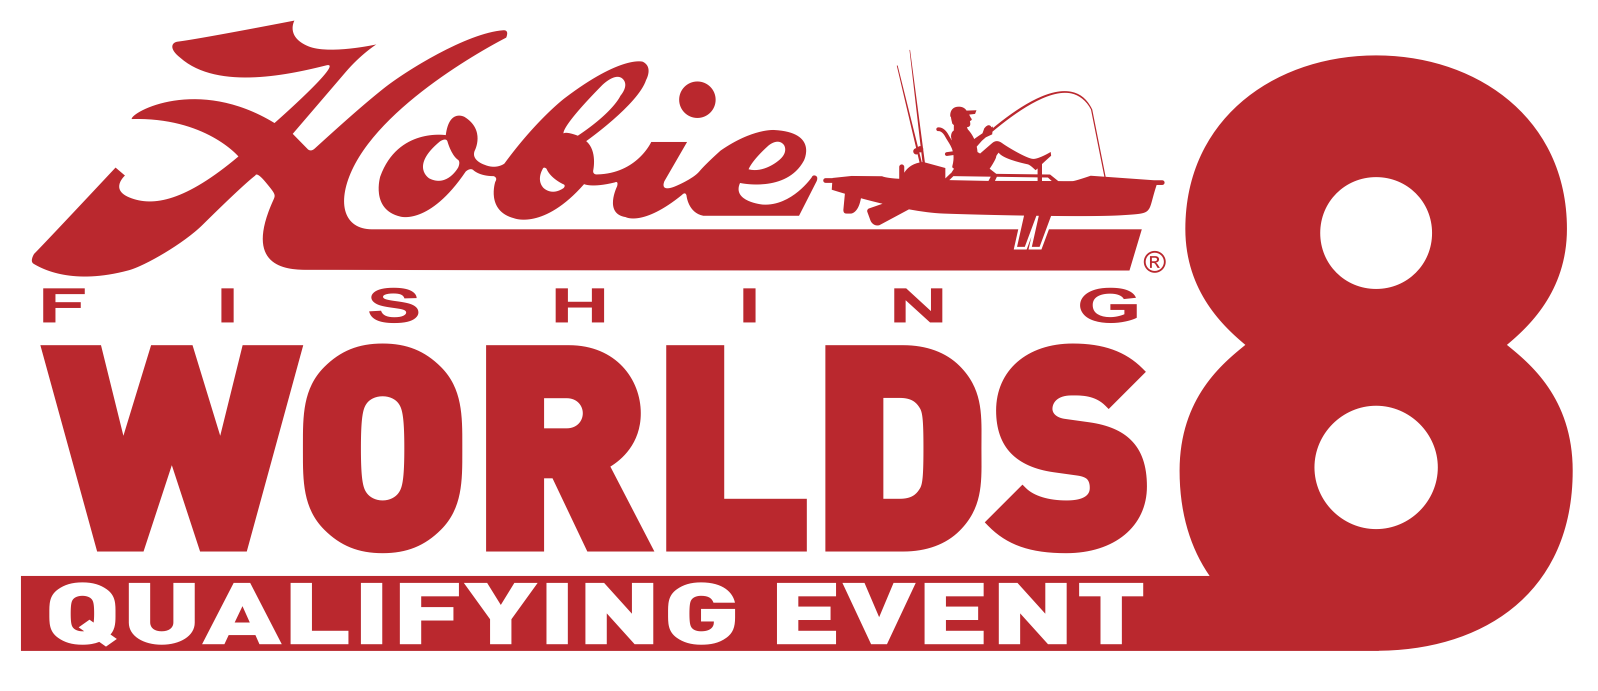 Hobie Worlds 8 Logo - Red